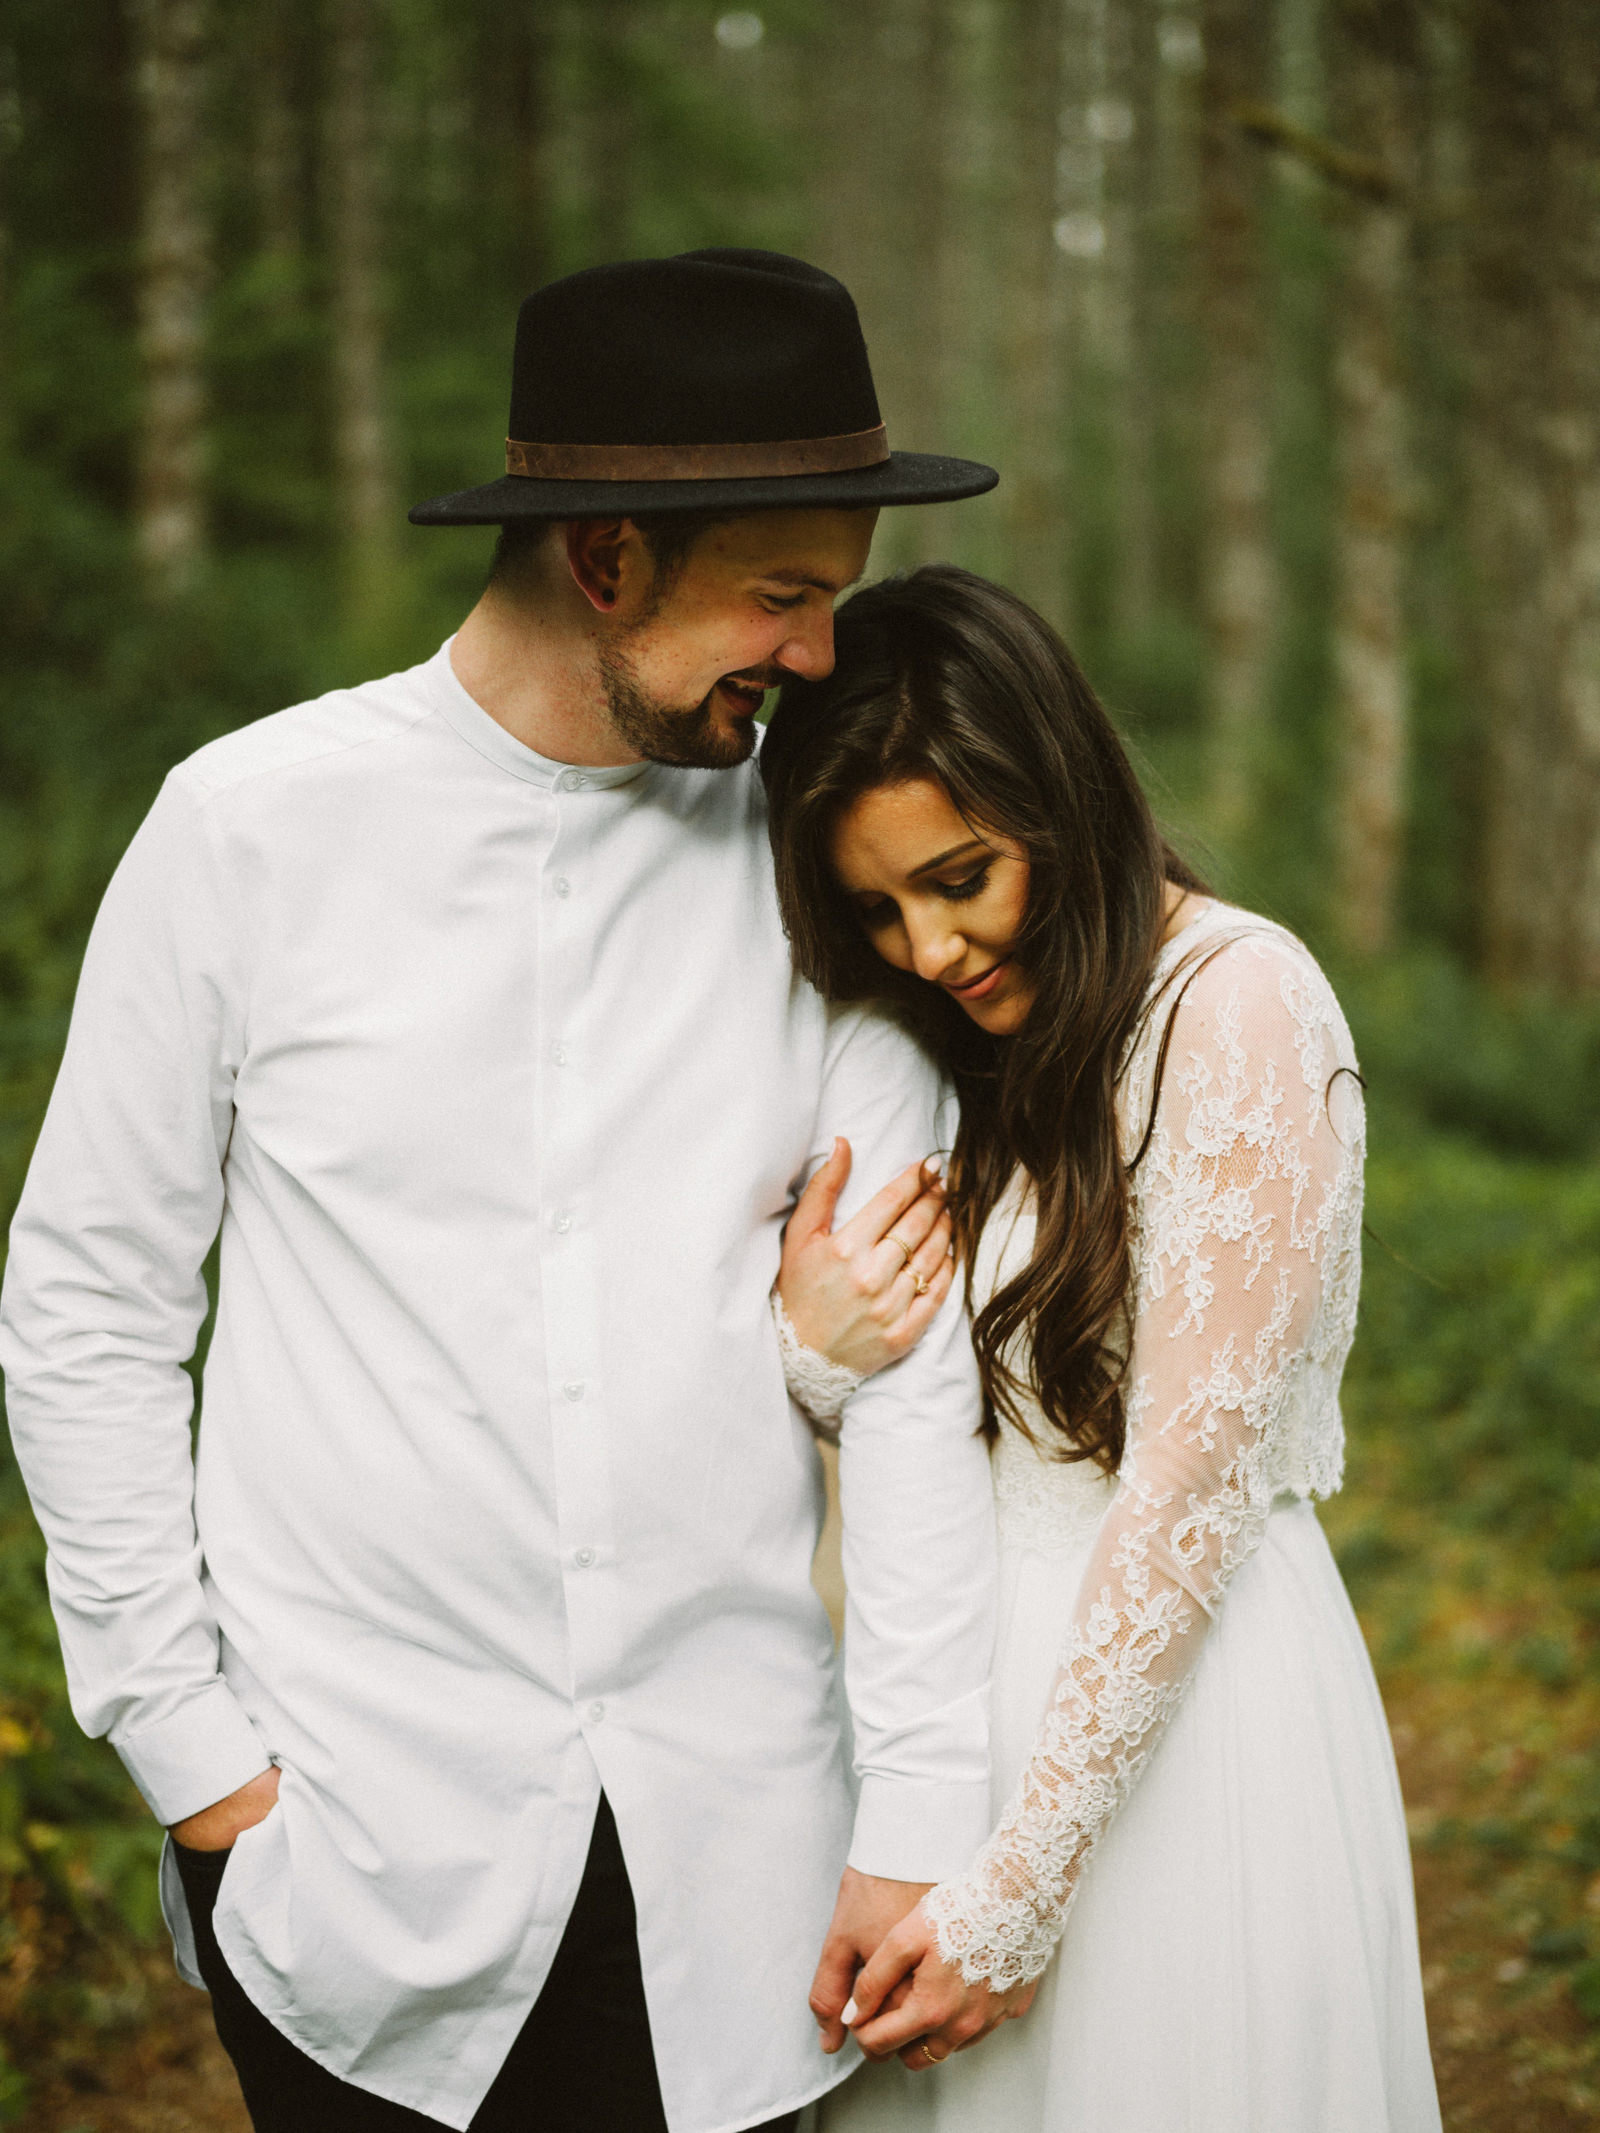 athena-and-camron-seattle-elopement-wedding-benj-haisch-rattlesnake-lake-christian-couple-goals13